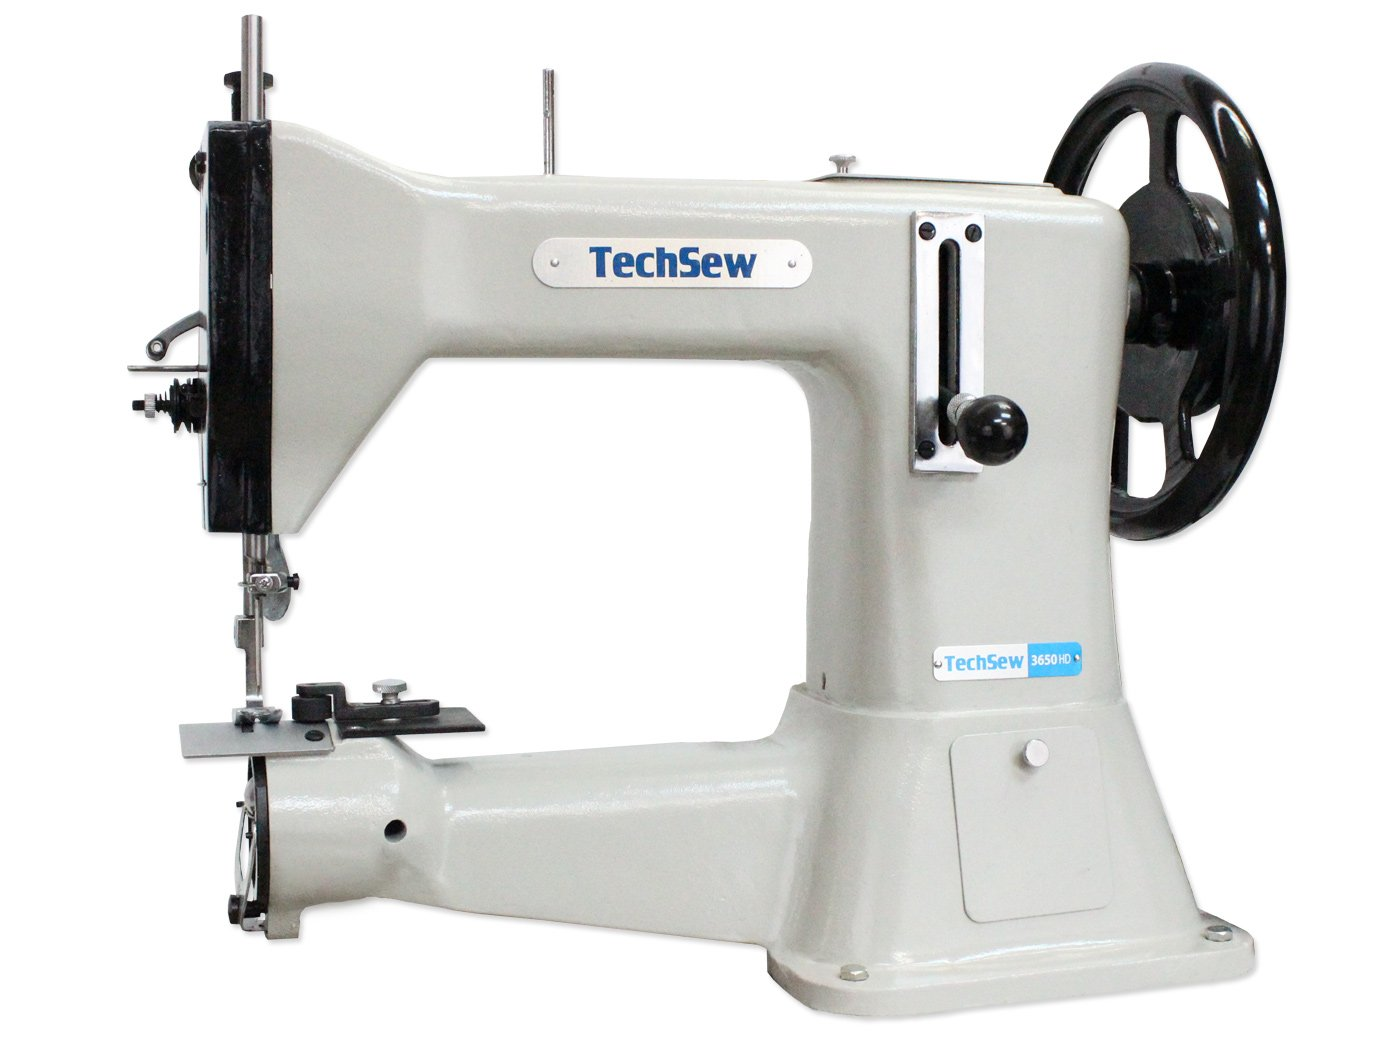 TechSew 3650HD Heavy Duty Leather Industrial Sewing Machine with Assembled Table /& Servo Motor